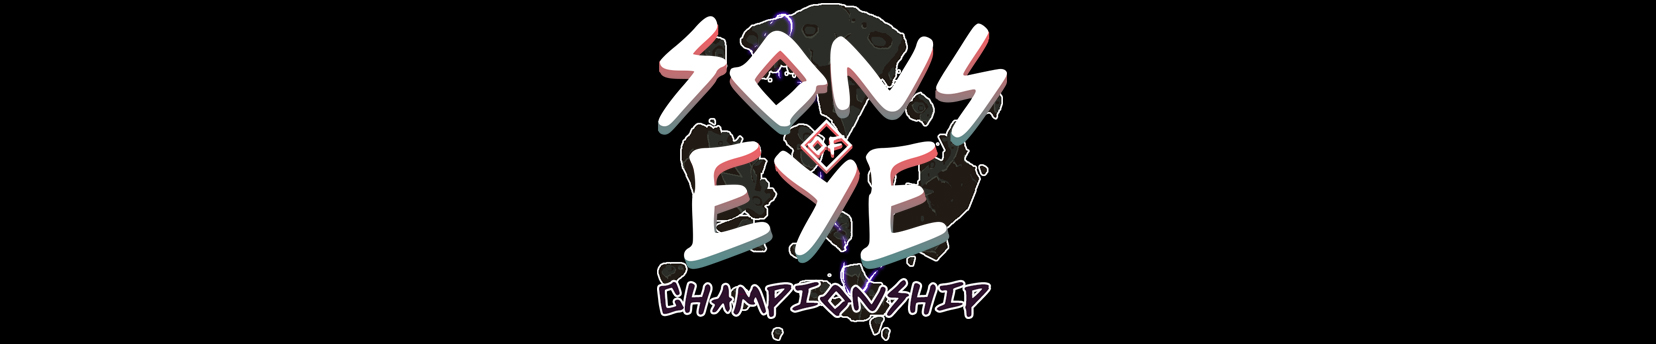 Sons of Eye Championship